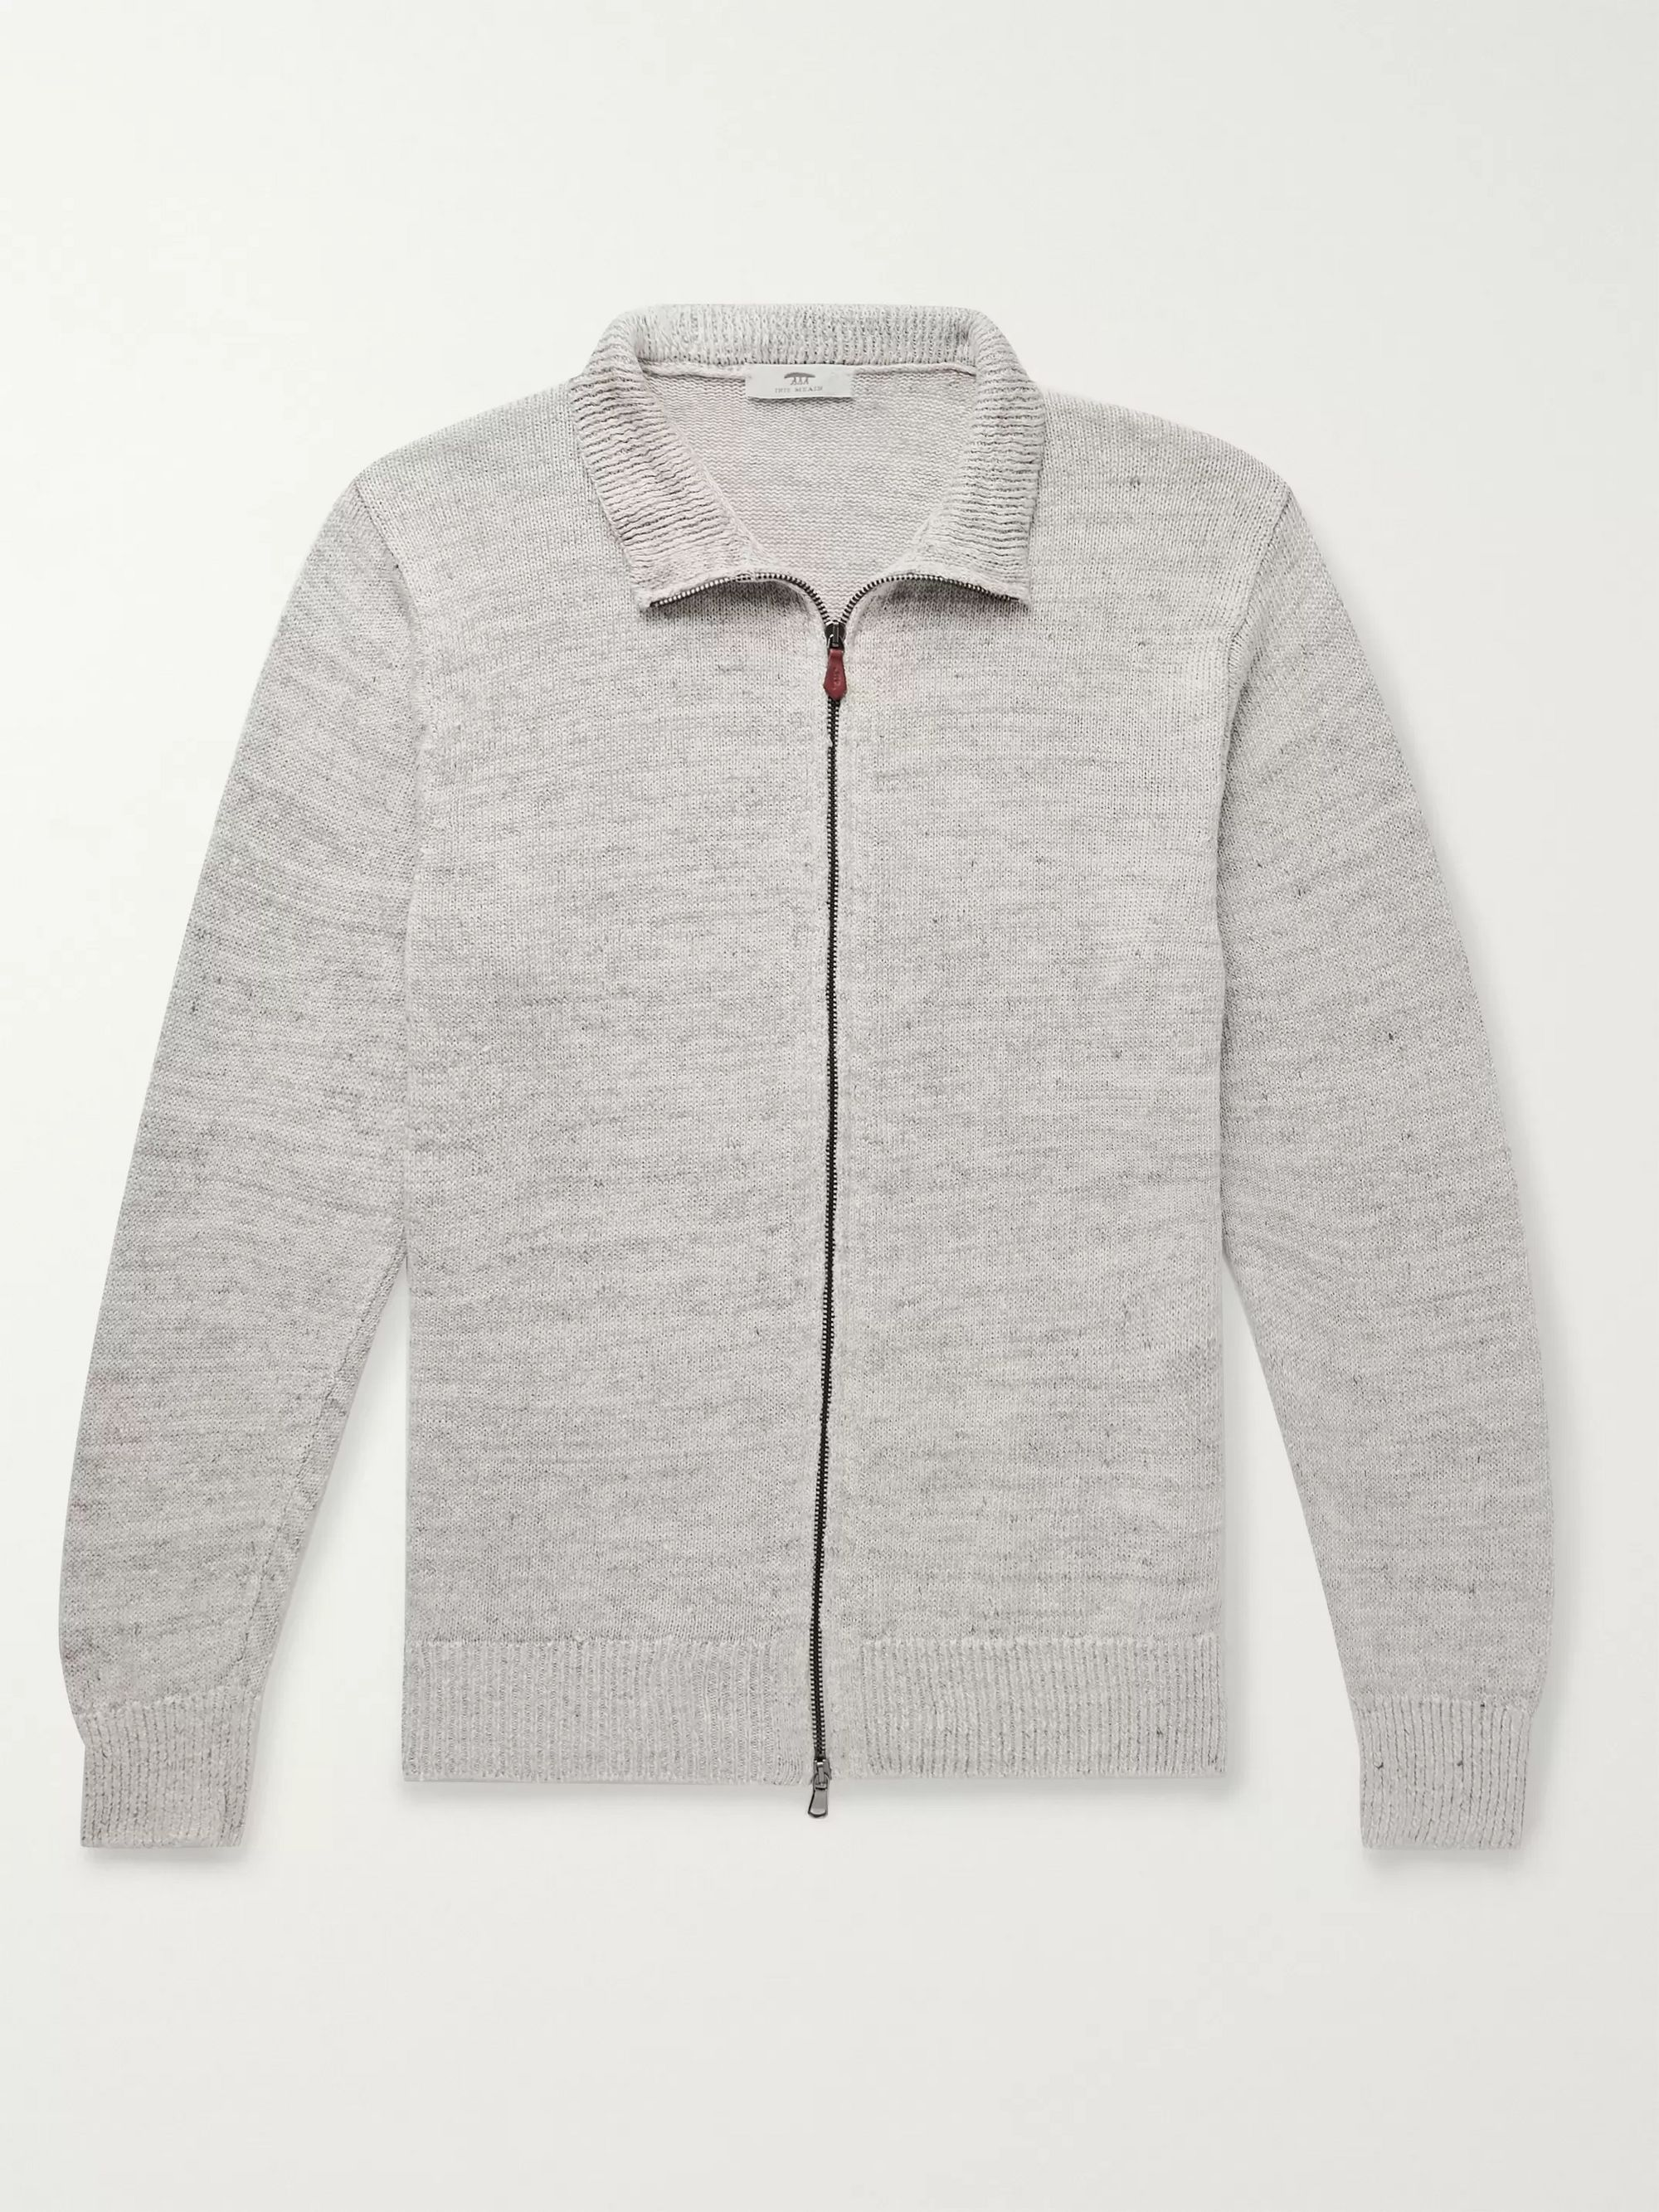 Inis Meáin Washed-Linen Zip-Up Cardigan